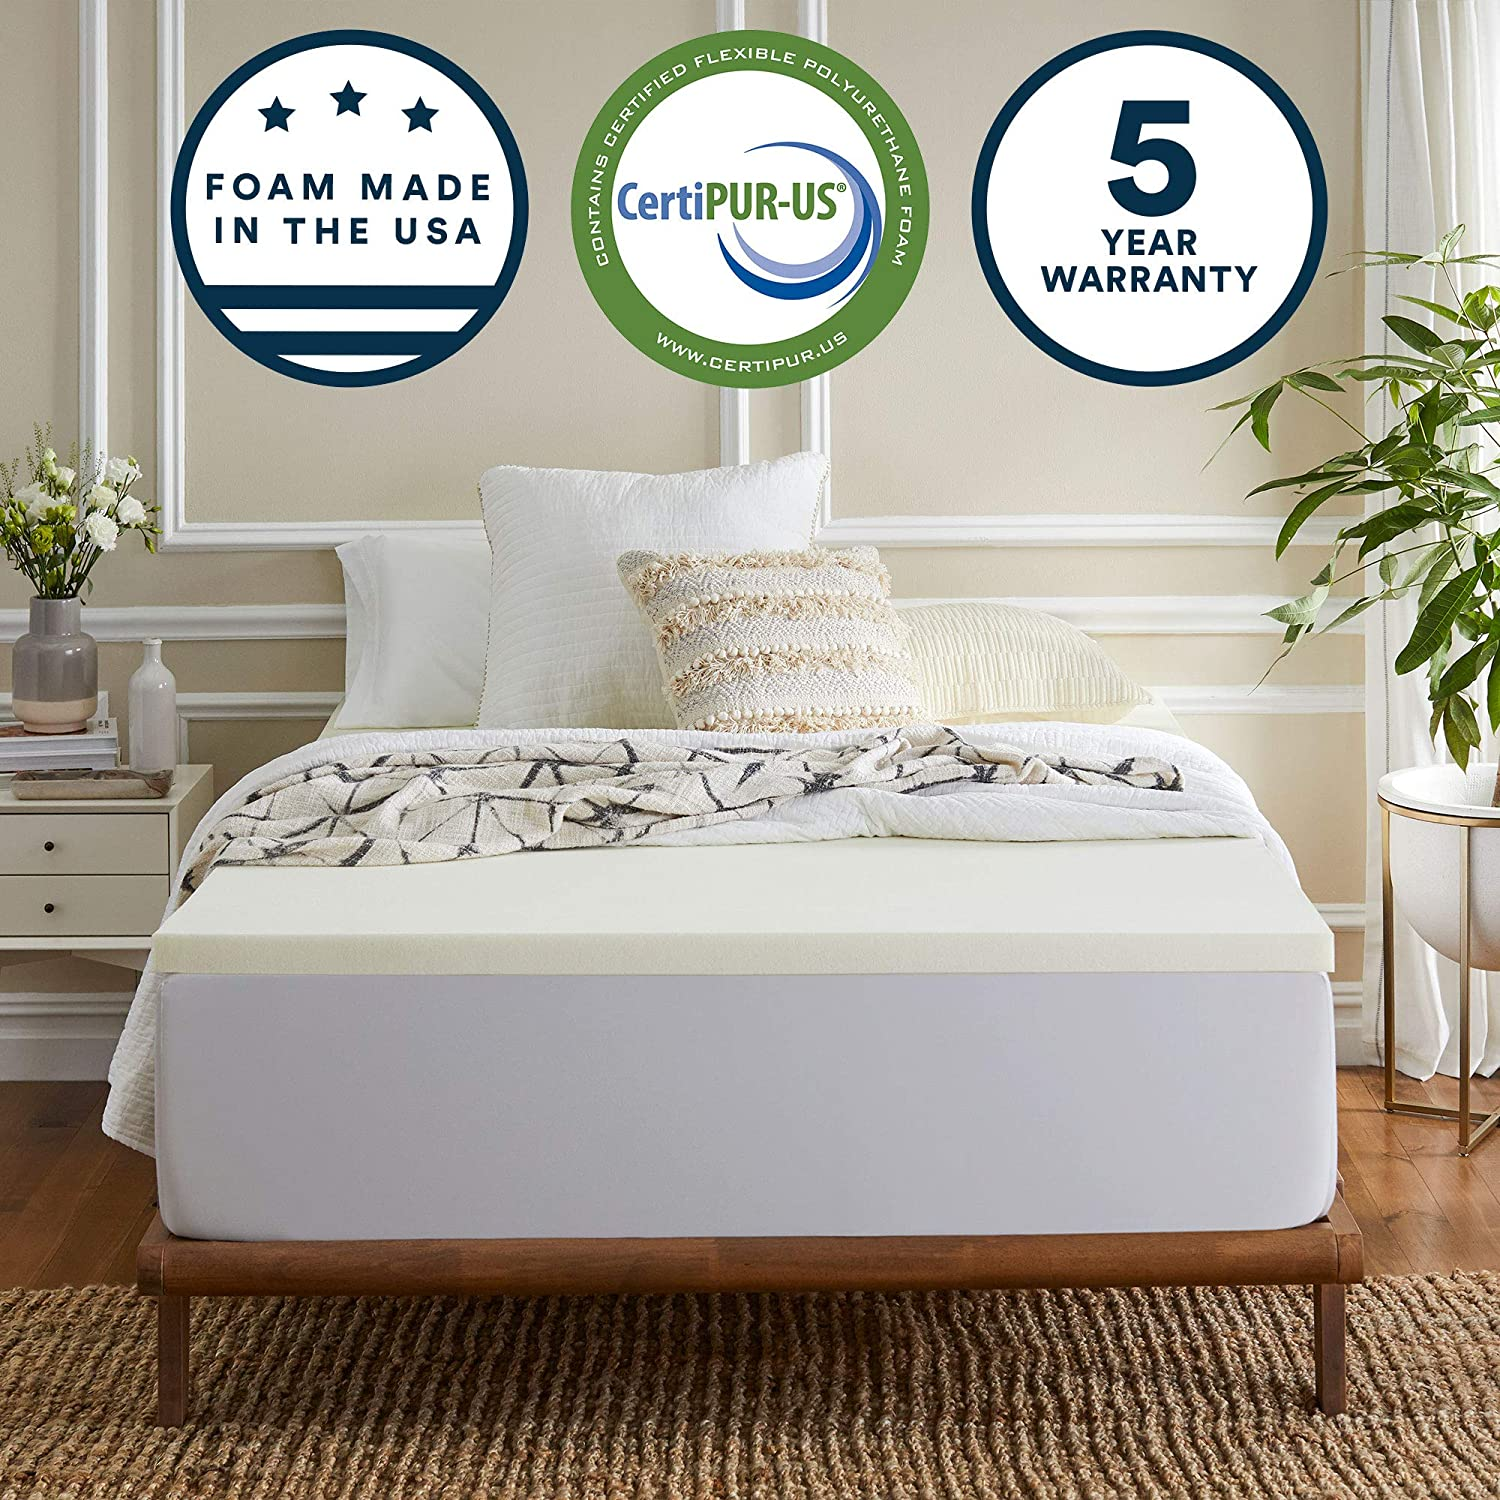 Sleep Innovations 2-inch Gel Memory Foam Mattress Topper Full, Made in The USA with a 5-Year Warranty